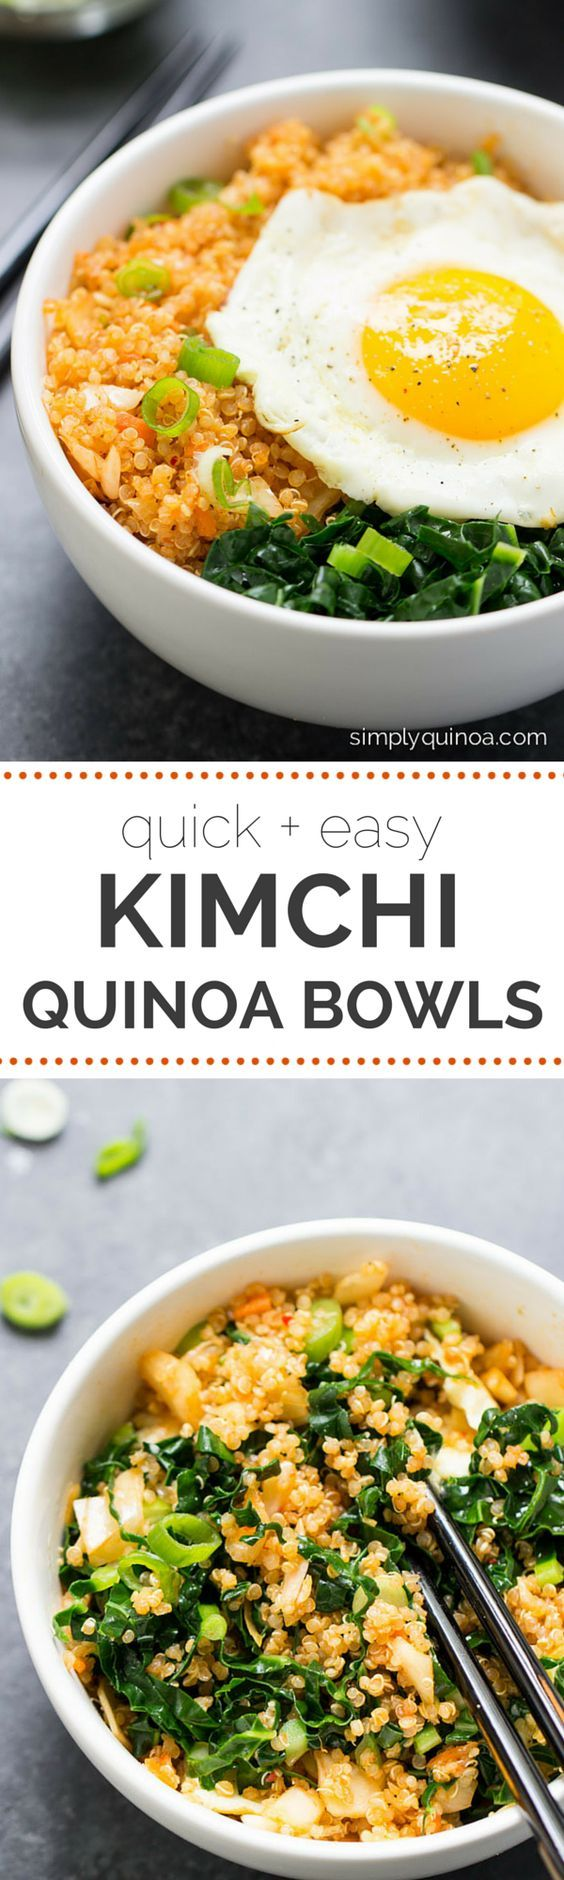 Spicy Kimchi Quinoa Bowls -- an easy lunch or dinner recipe that takes less than 15 minutes to make!